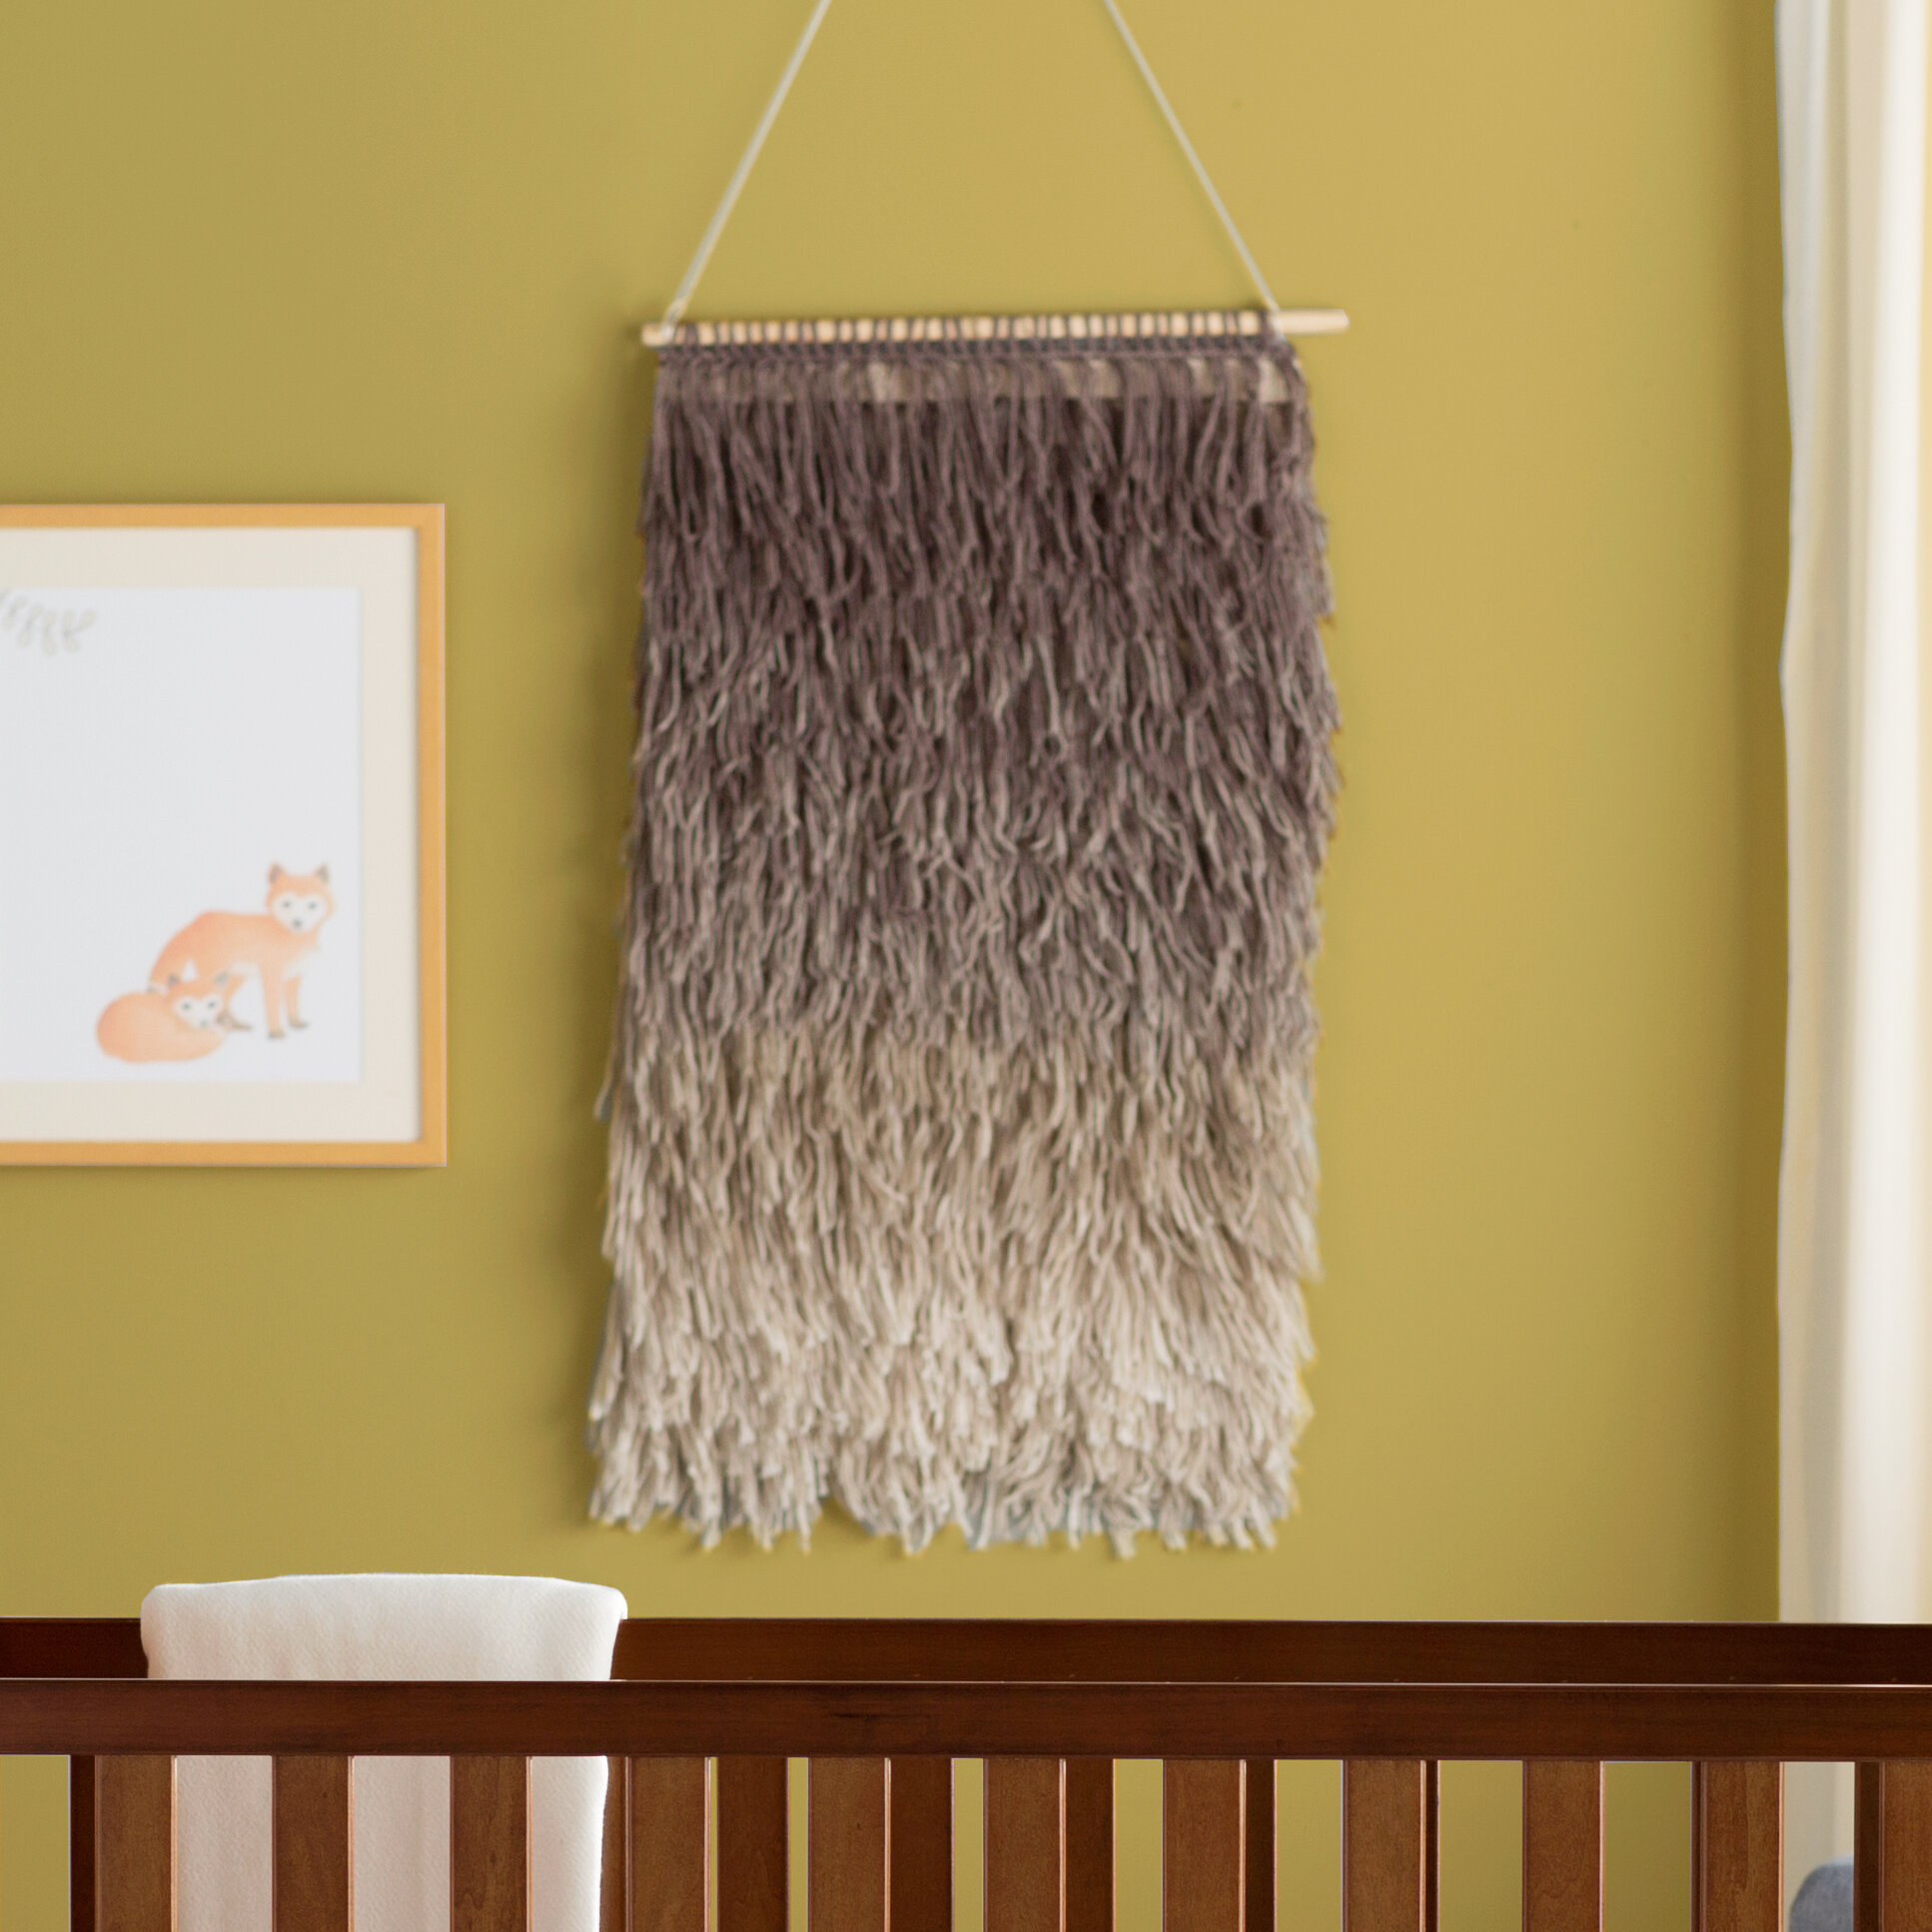 Cotton Destrie Wall Hanging With Rod Included For Most Recent Blended Fabric Saber Wall Hangings With Rod (View 4 of 20)